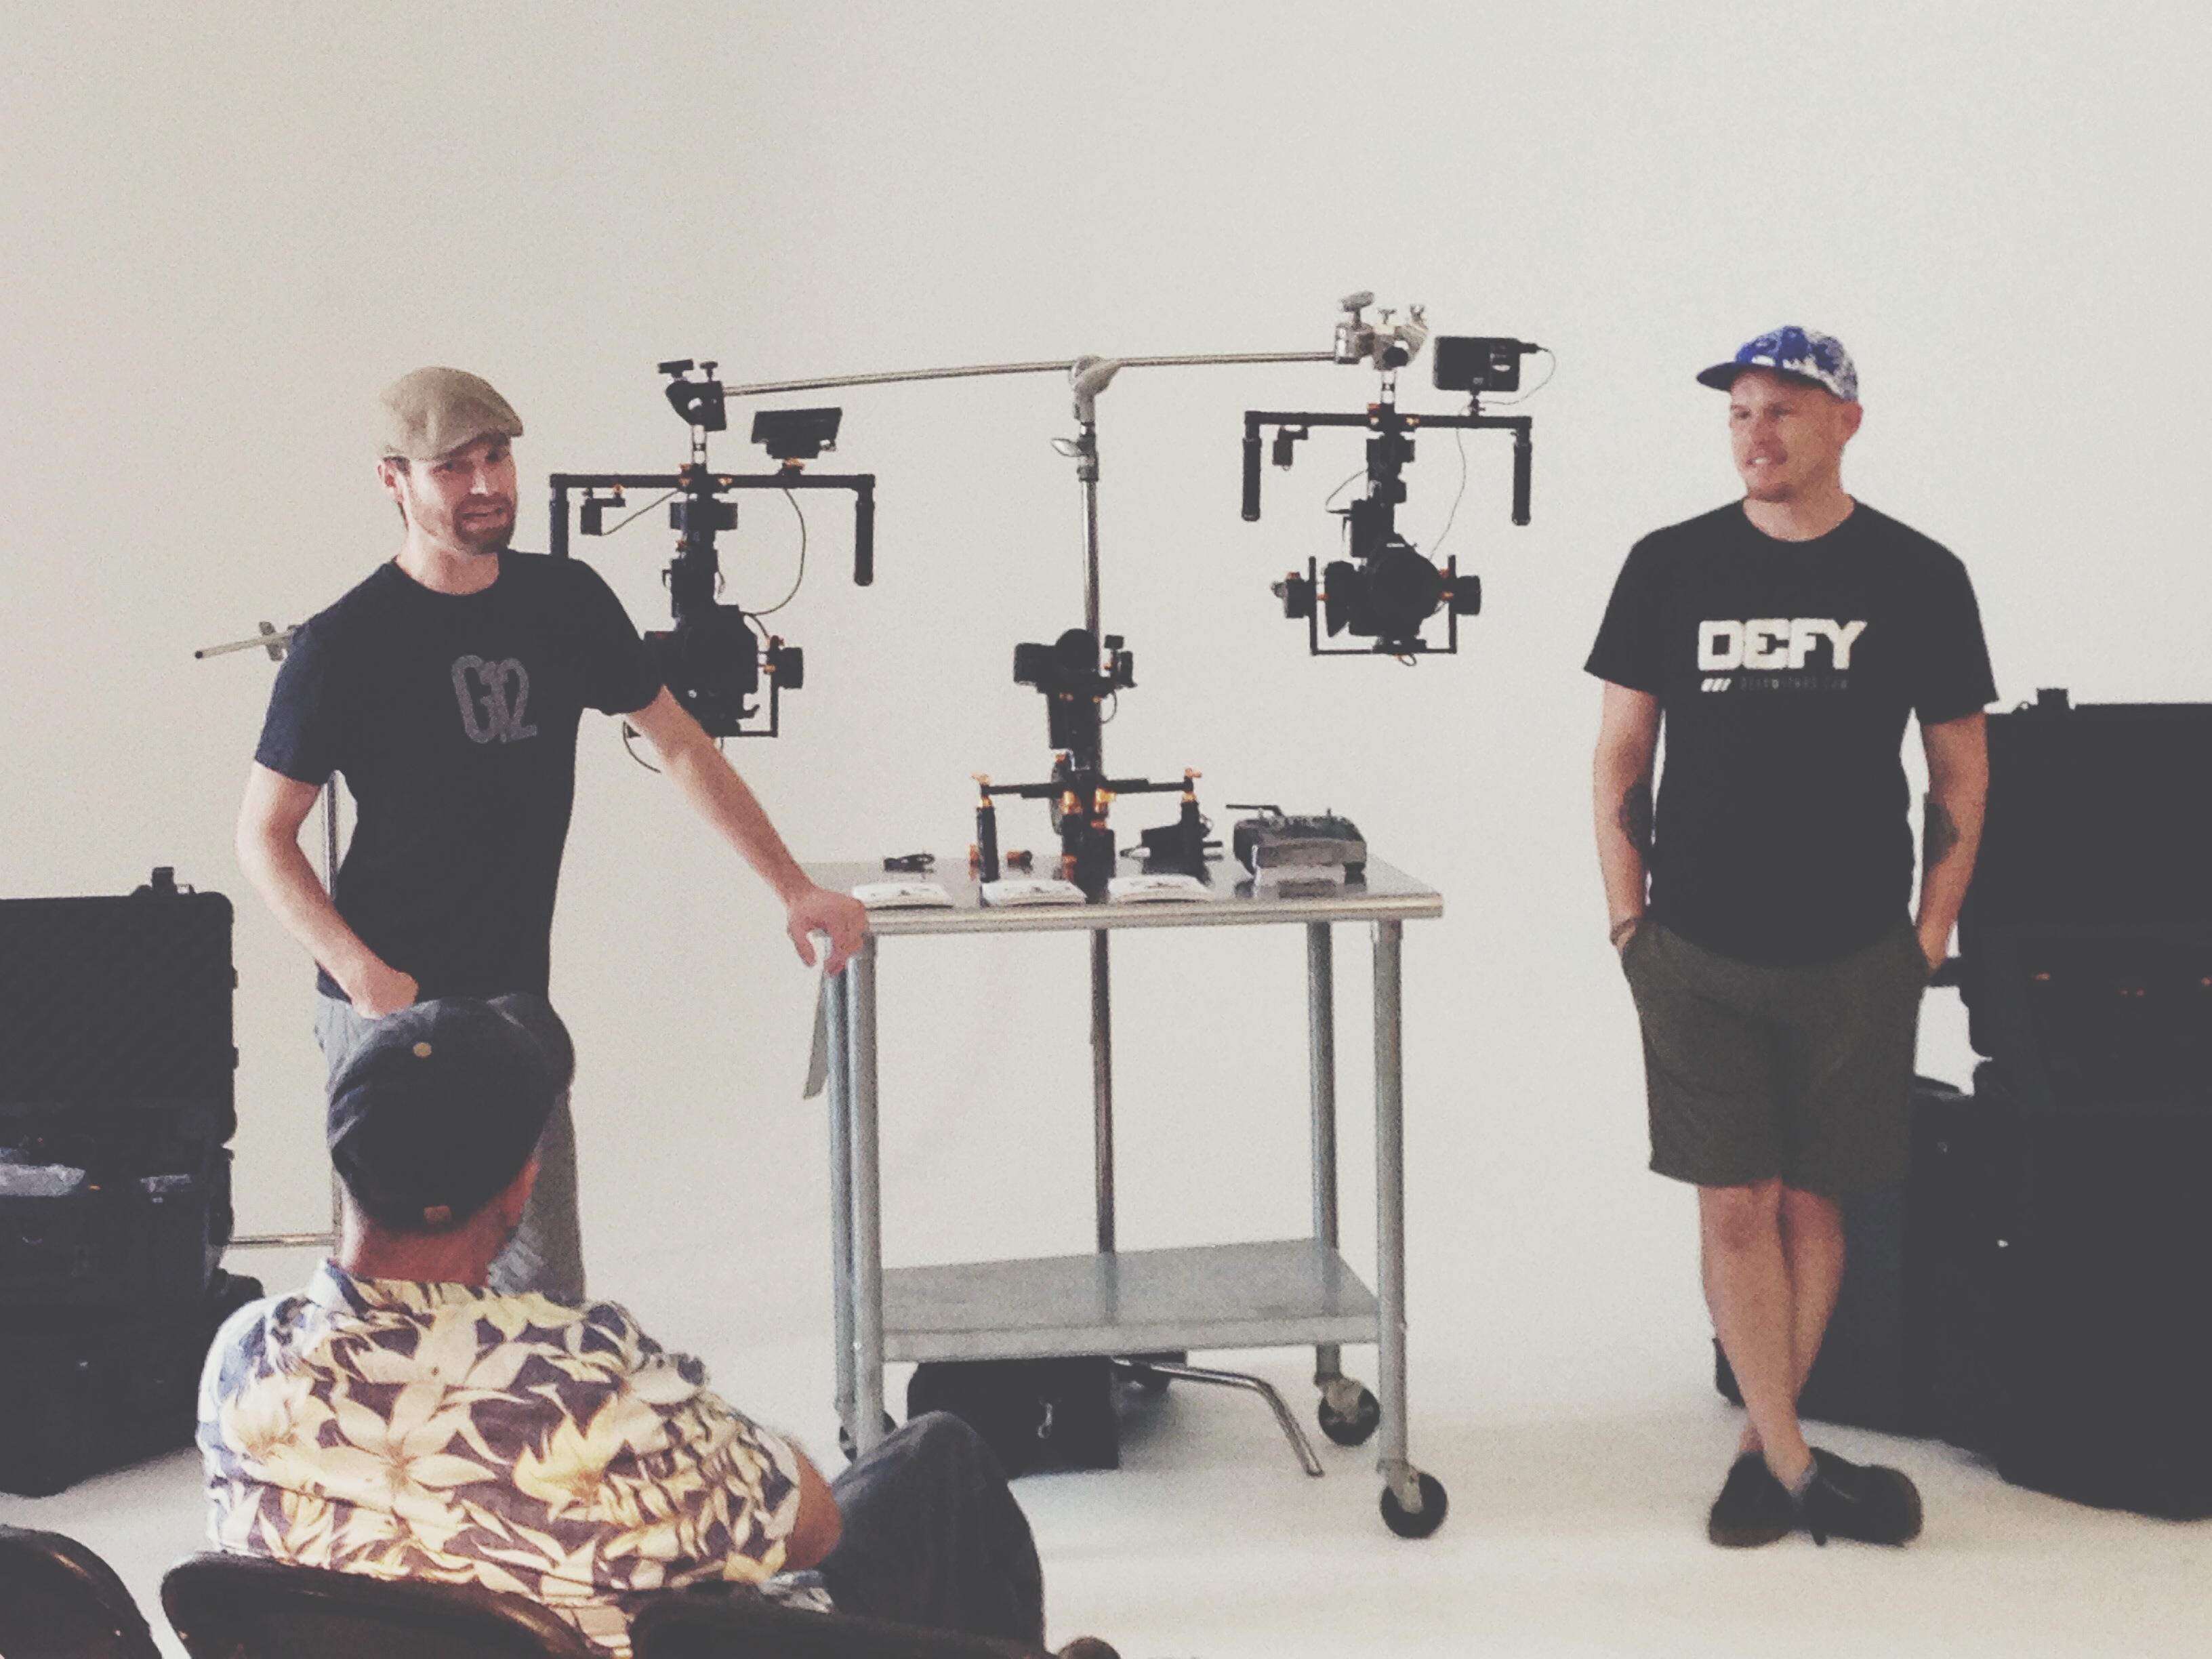 Lookout Movi You're Not the Only Kid In Town: My 2 Days with the Defy G5